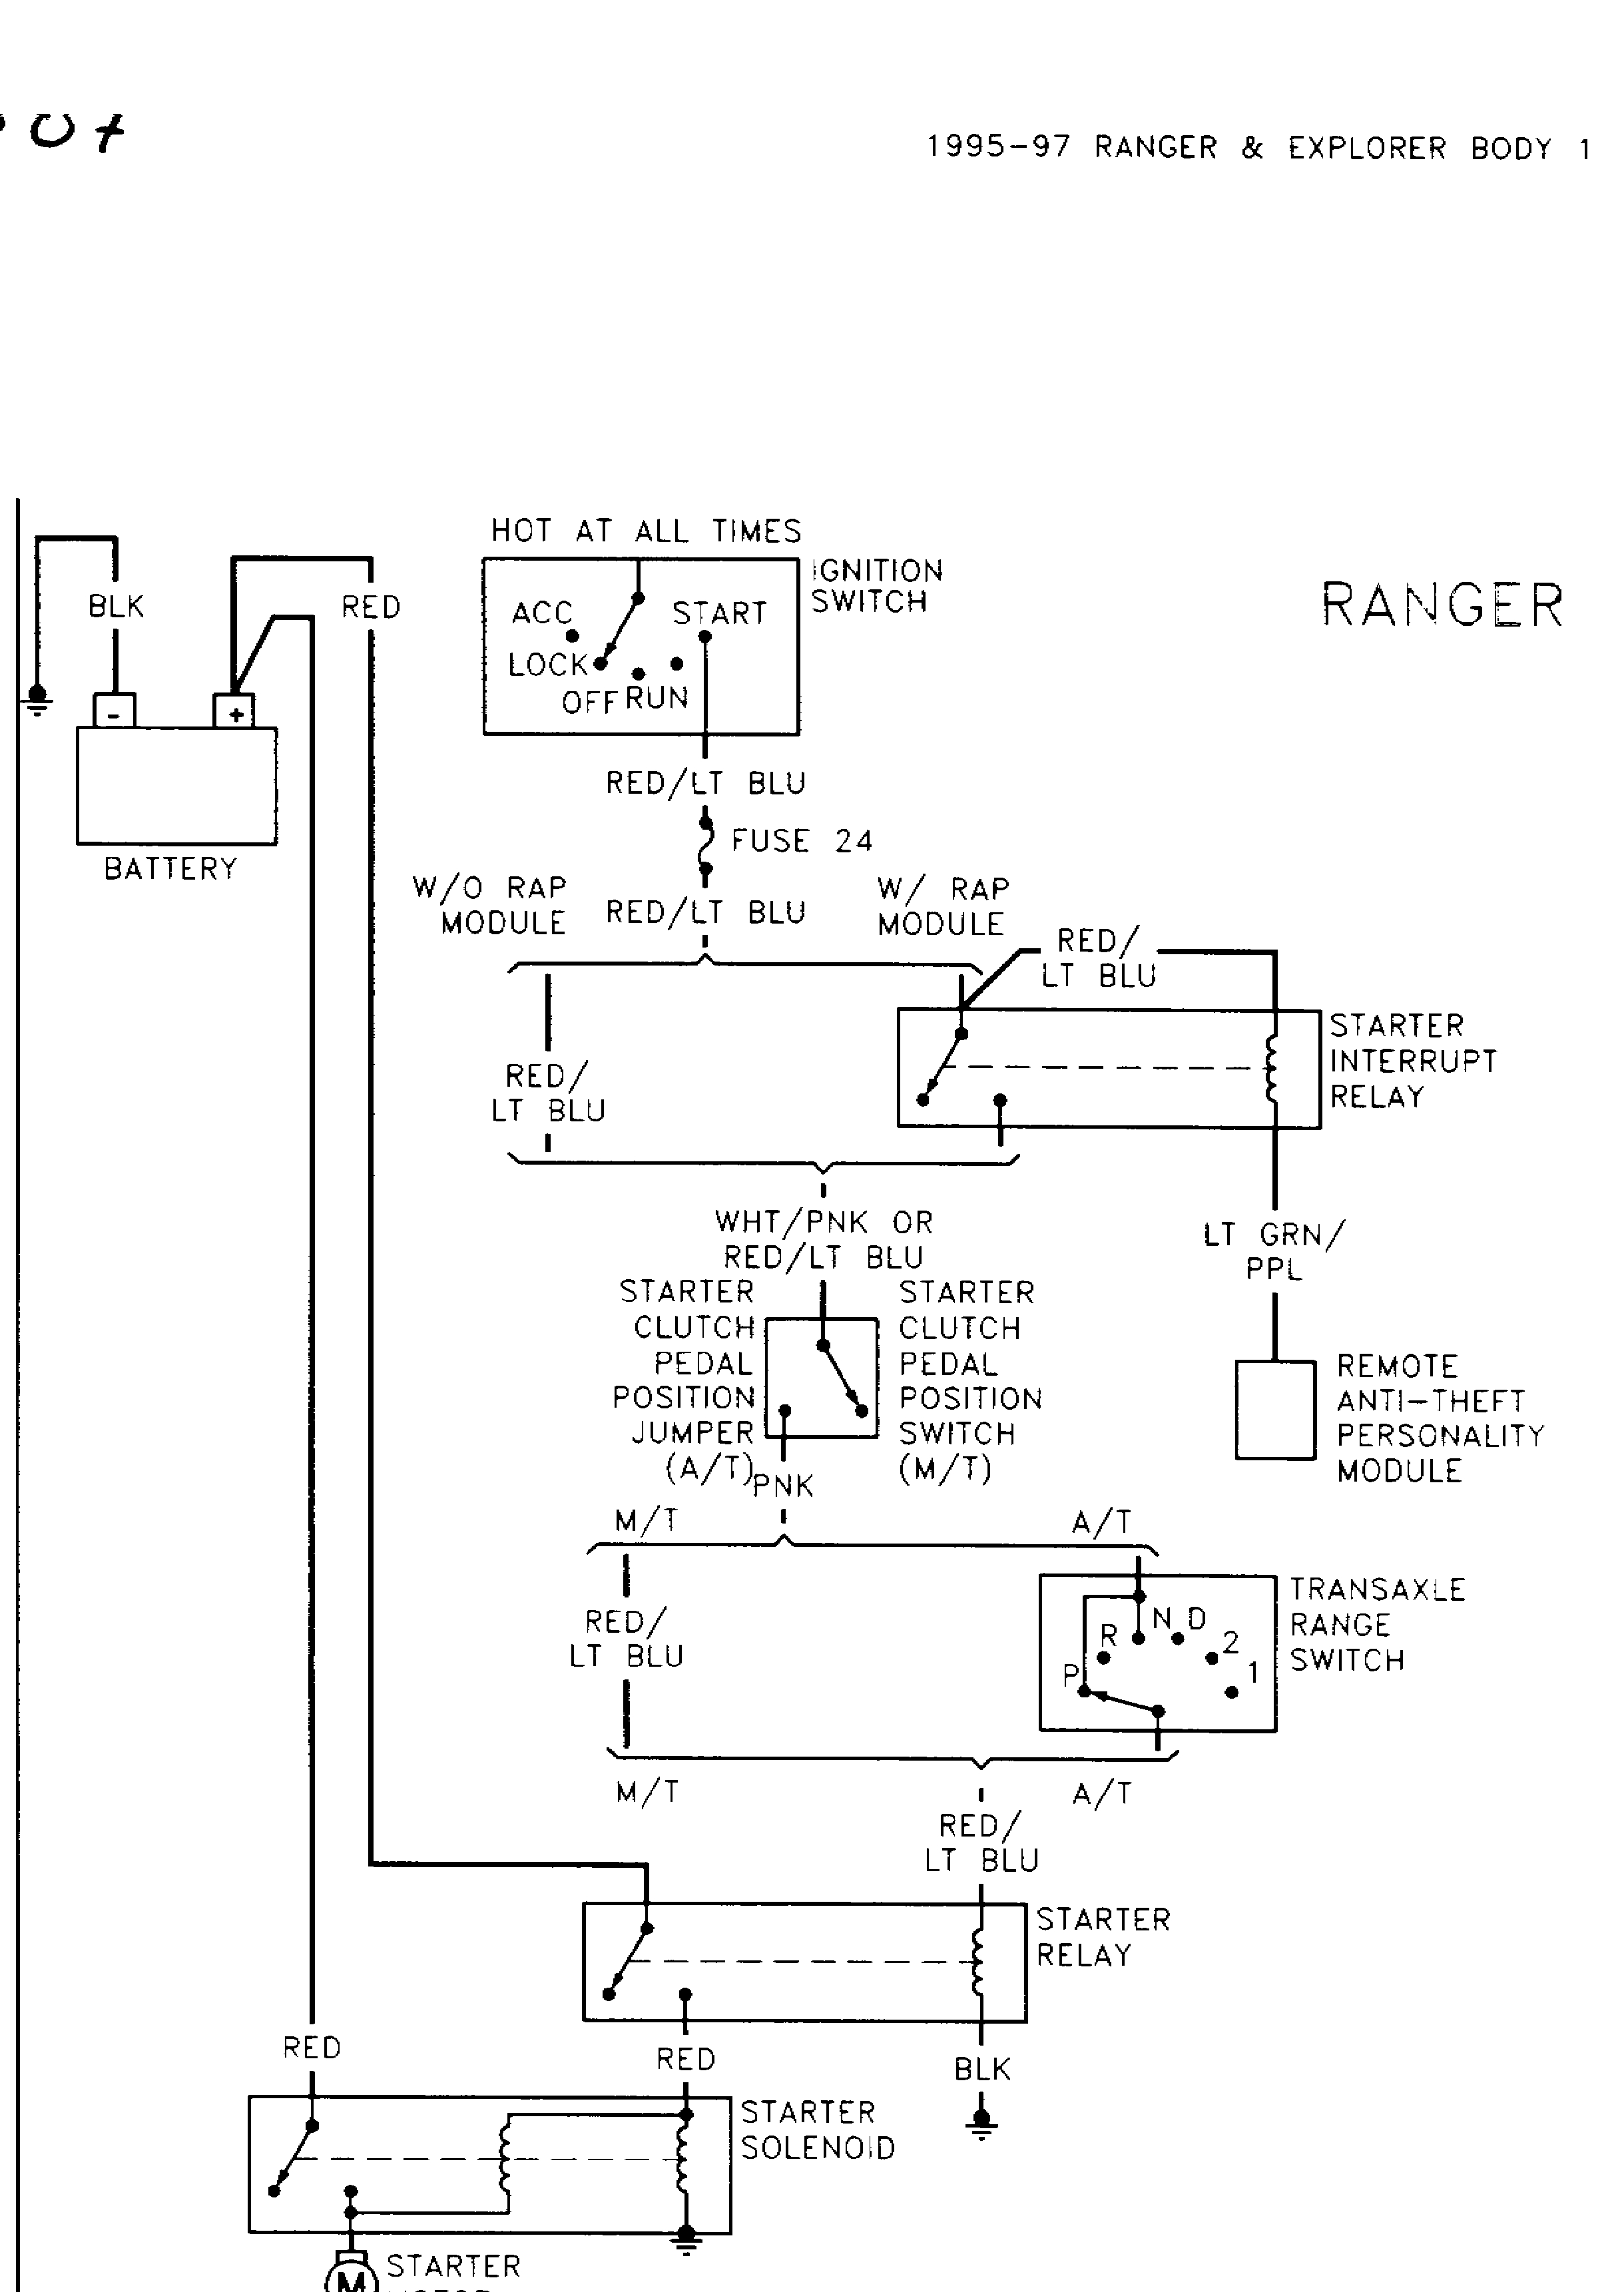 Where Is The Starter Interrupt Relay On A 1995 Ford Ranger